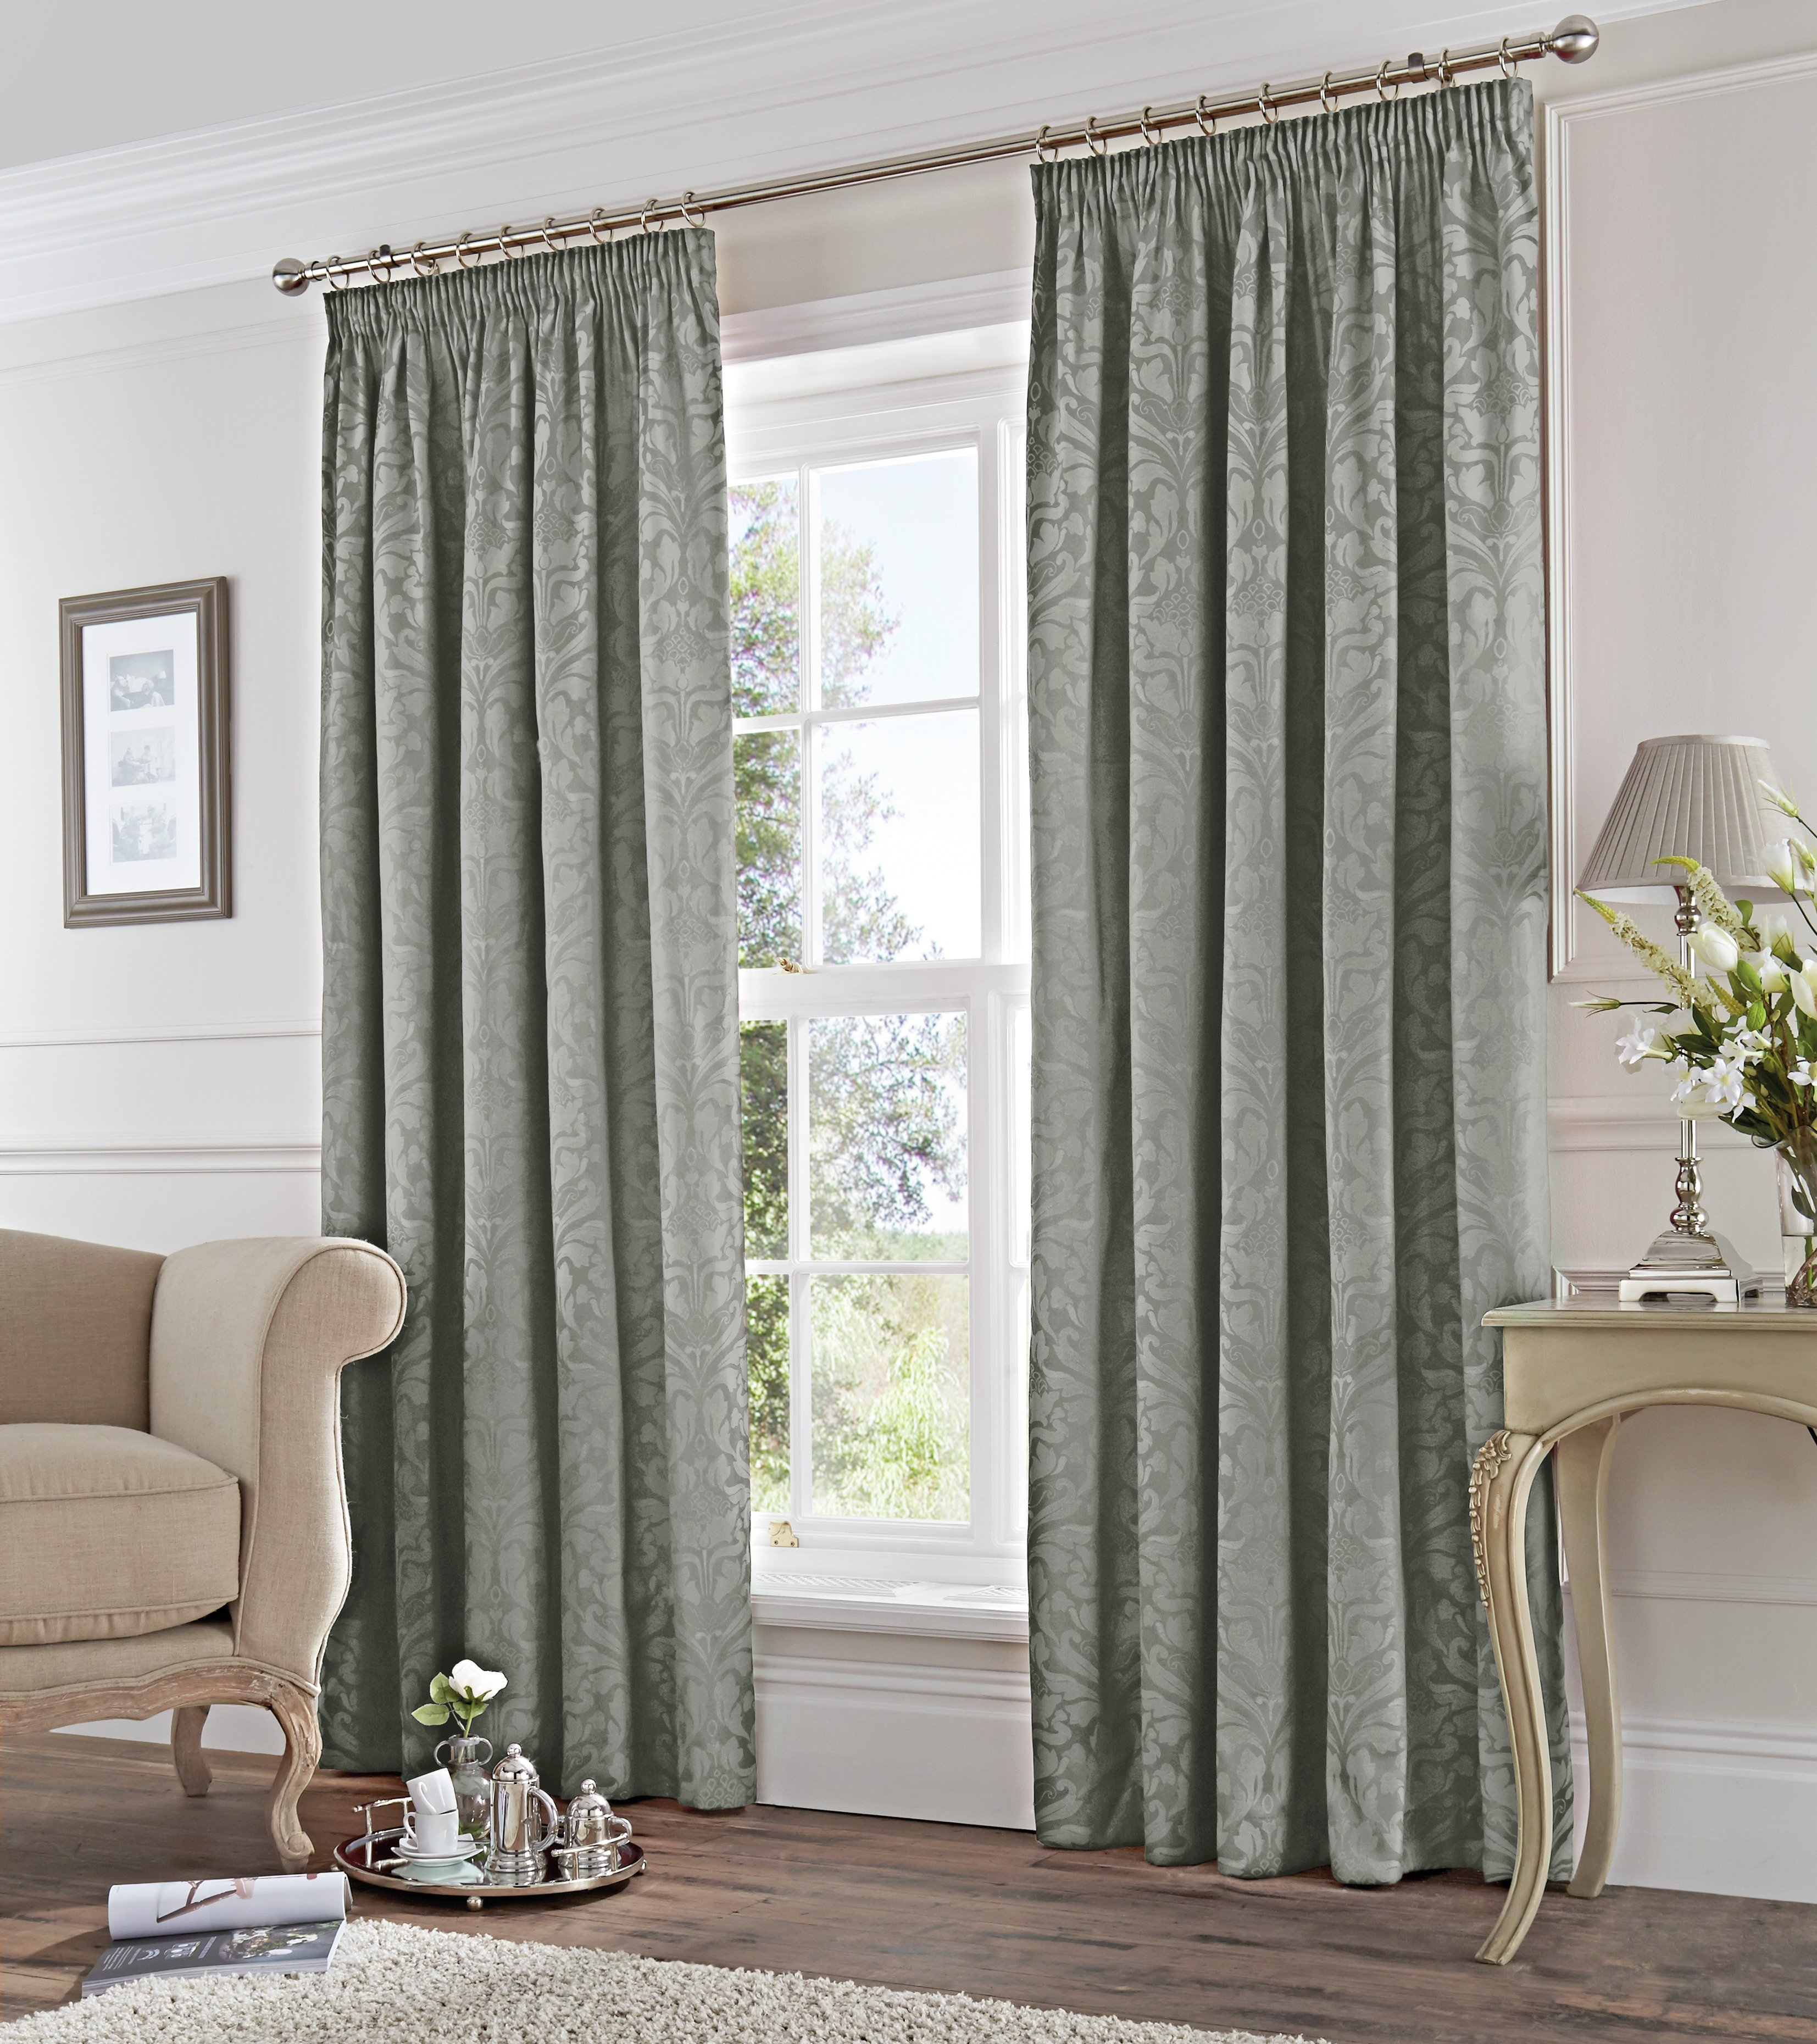 Fusion Eastbourne Lined Curtains - 168x183cm - Silver.